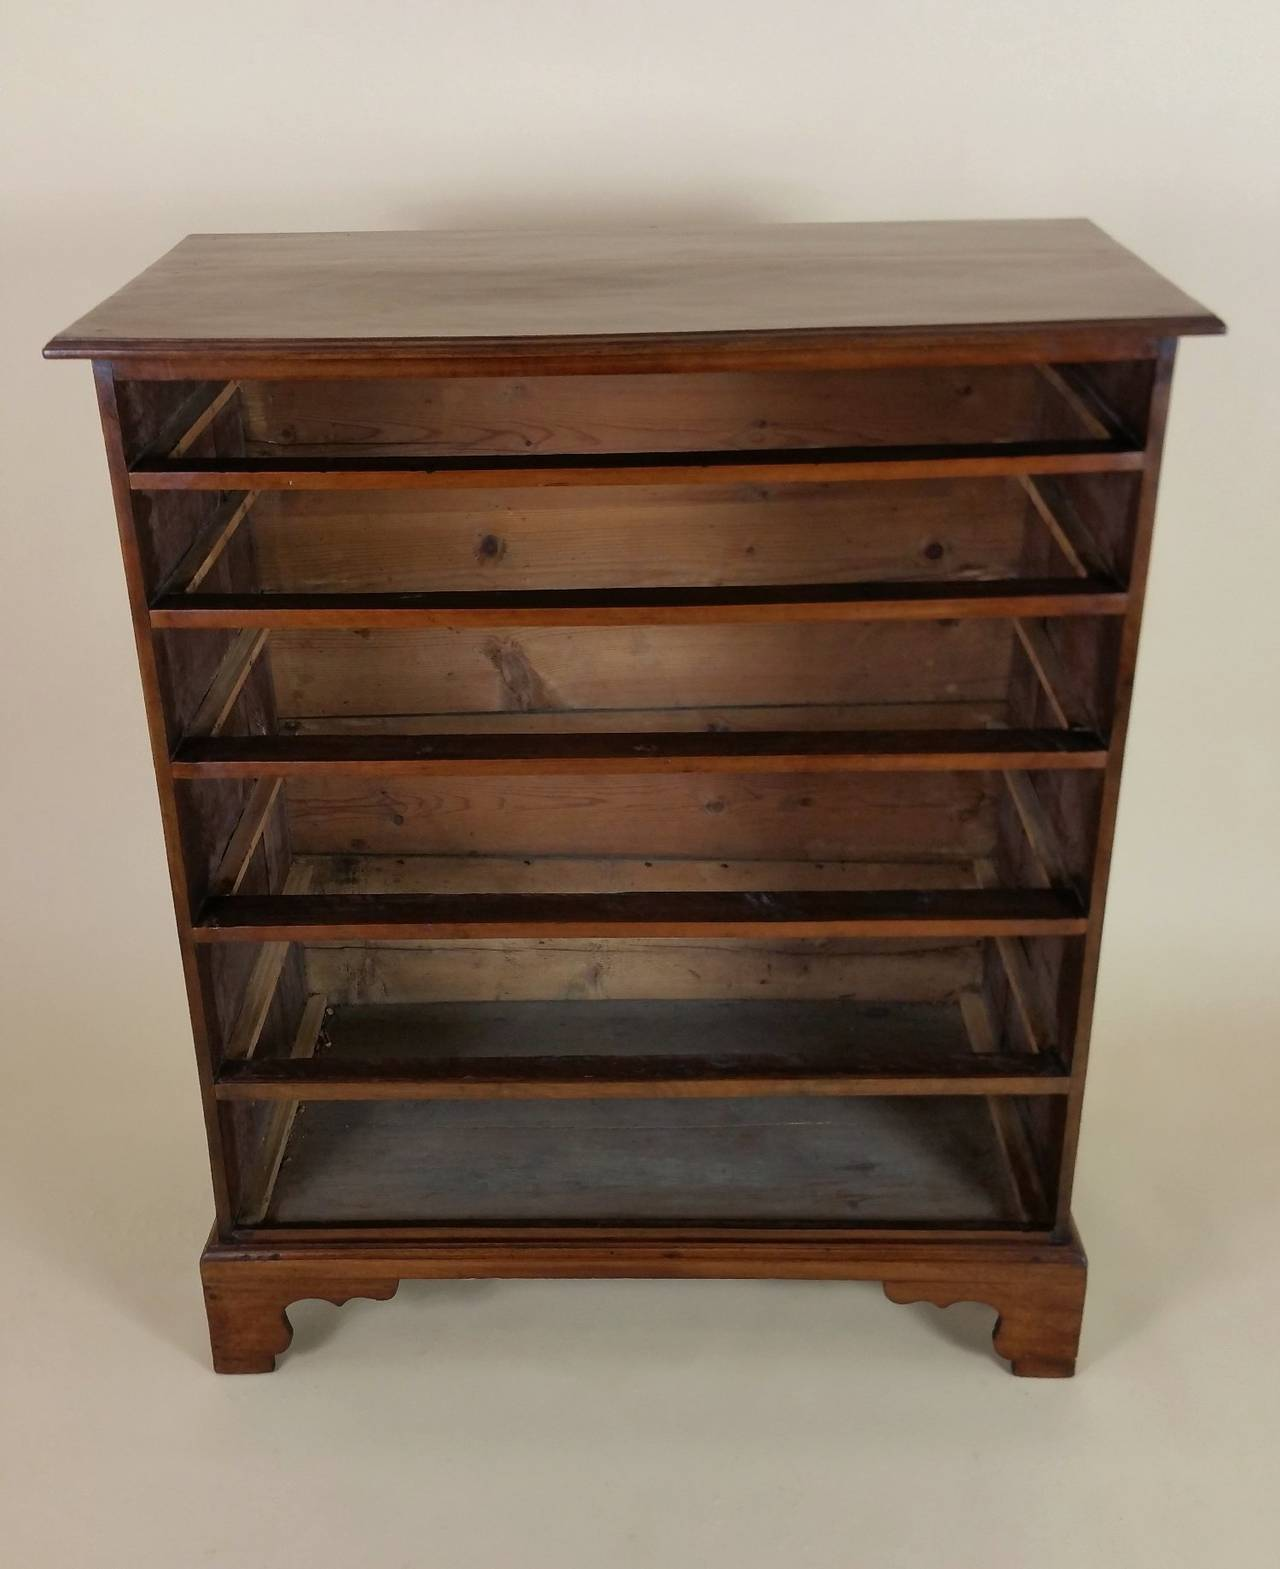 #653E27  / Case Pieces And Storage Cabinets / Commodes And Chests Of Drawers with 1280x1569 px of Best Chest Of Drawers Solid Wood 15691280 image @ avoidforclosure.info